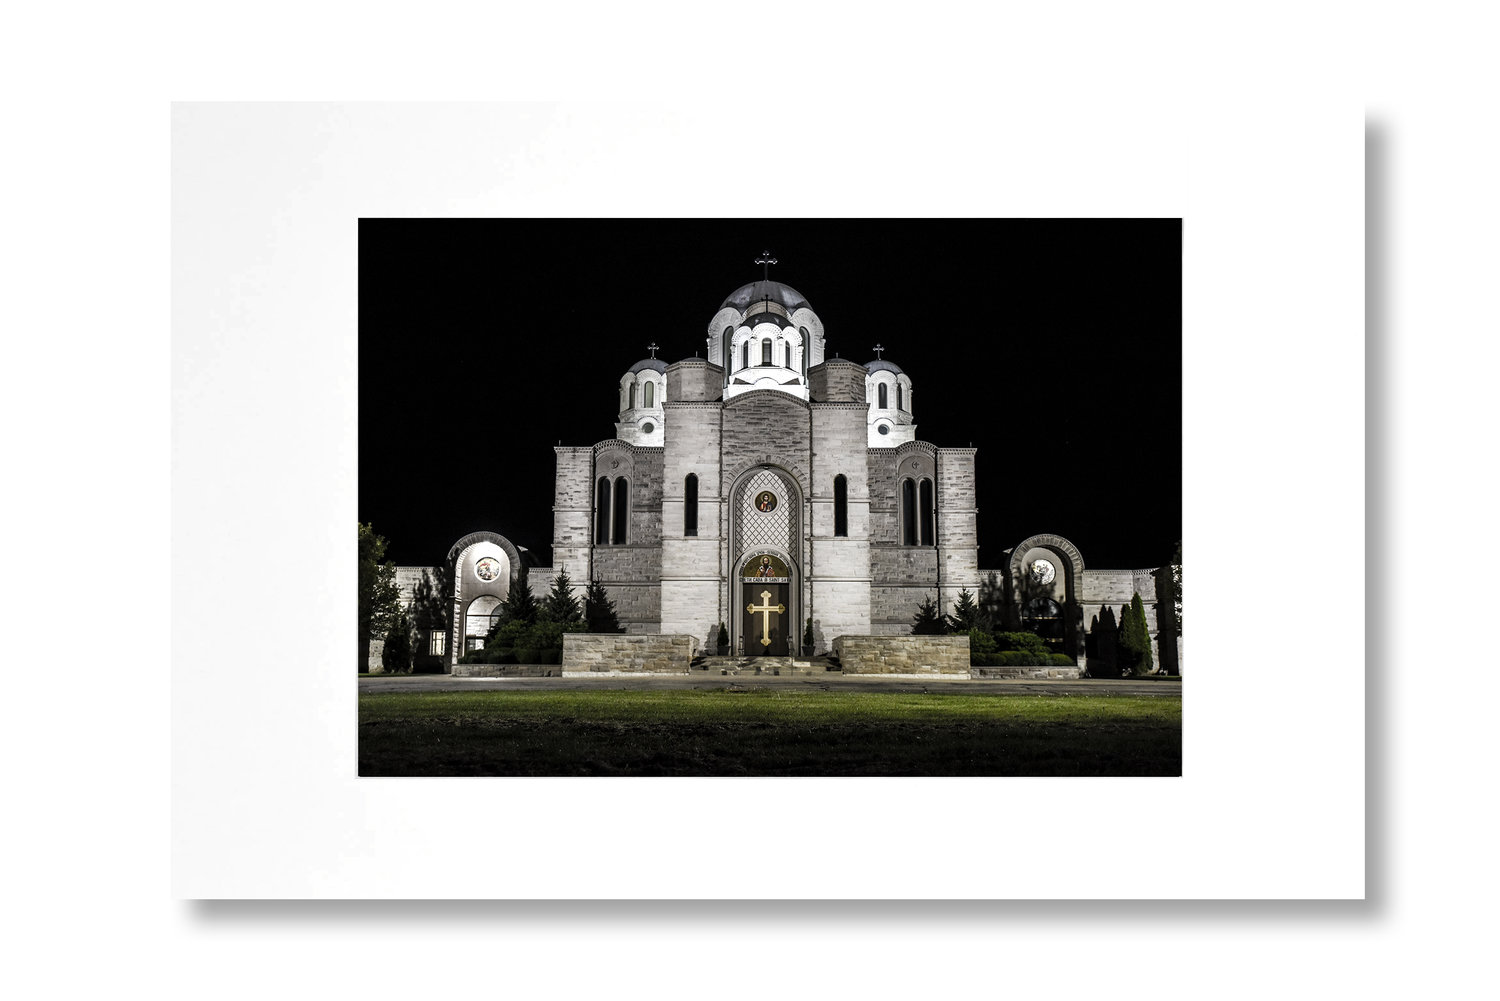 Serbian Orthodox Church 5x7in Greeting Card With 4x6in Removable